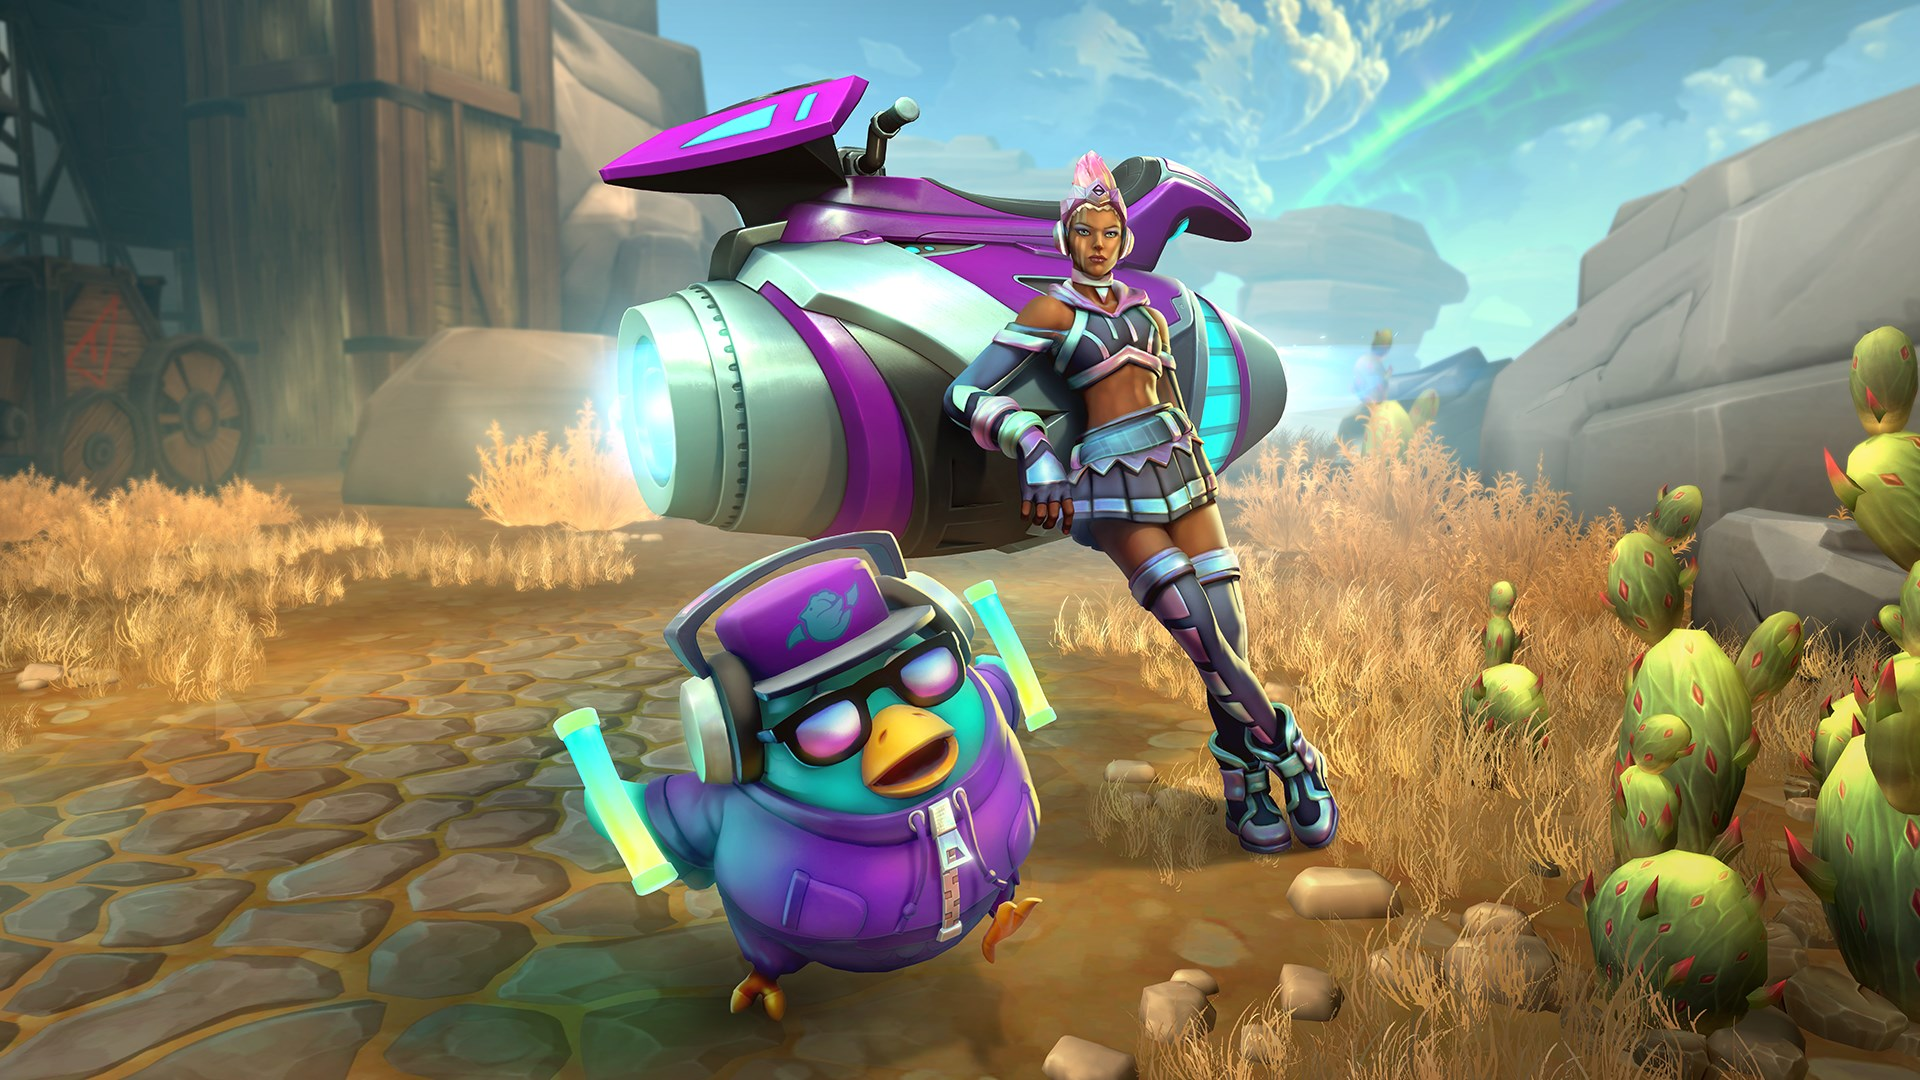 Cuisine Royale Malware Buy Realm Royale Bass Drop Bundle Microsoft Store En Ca